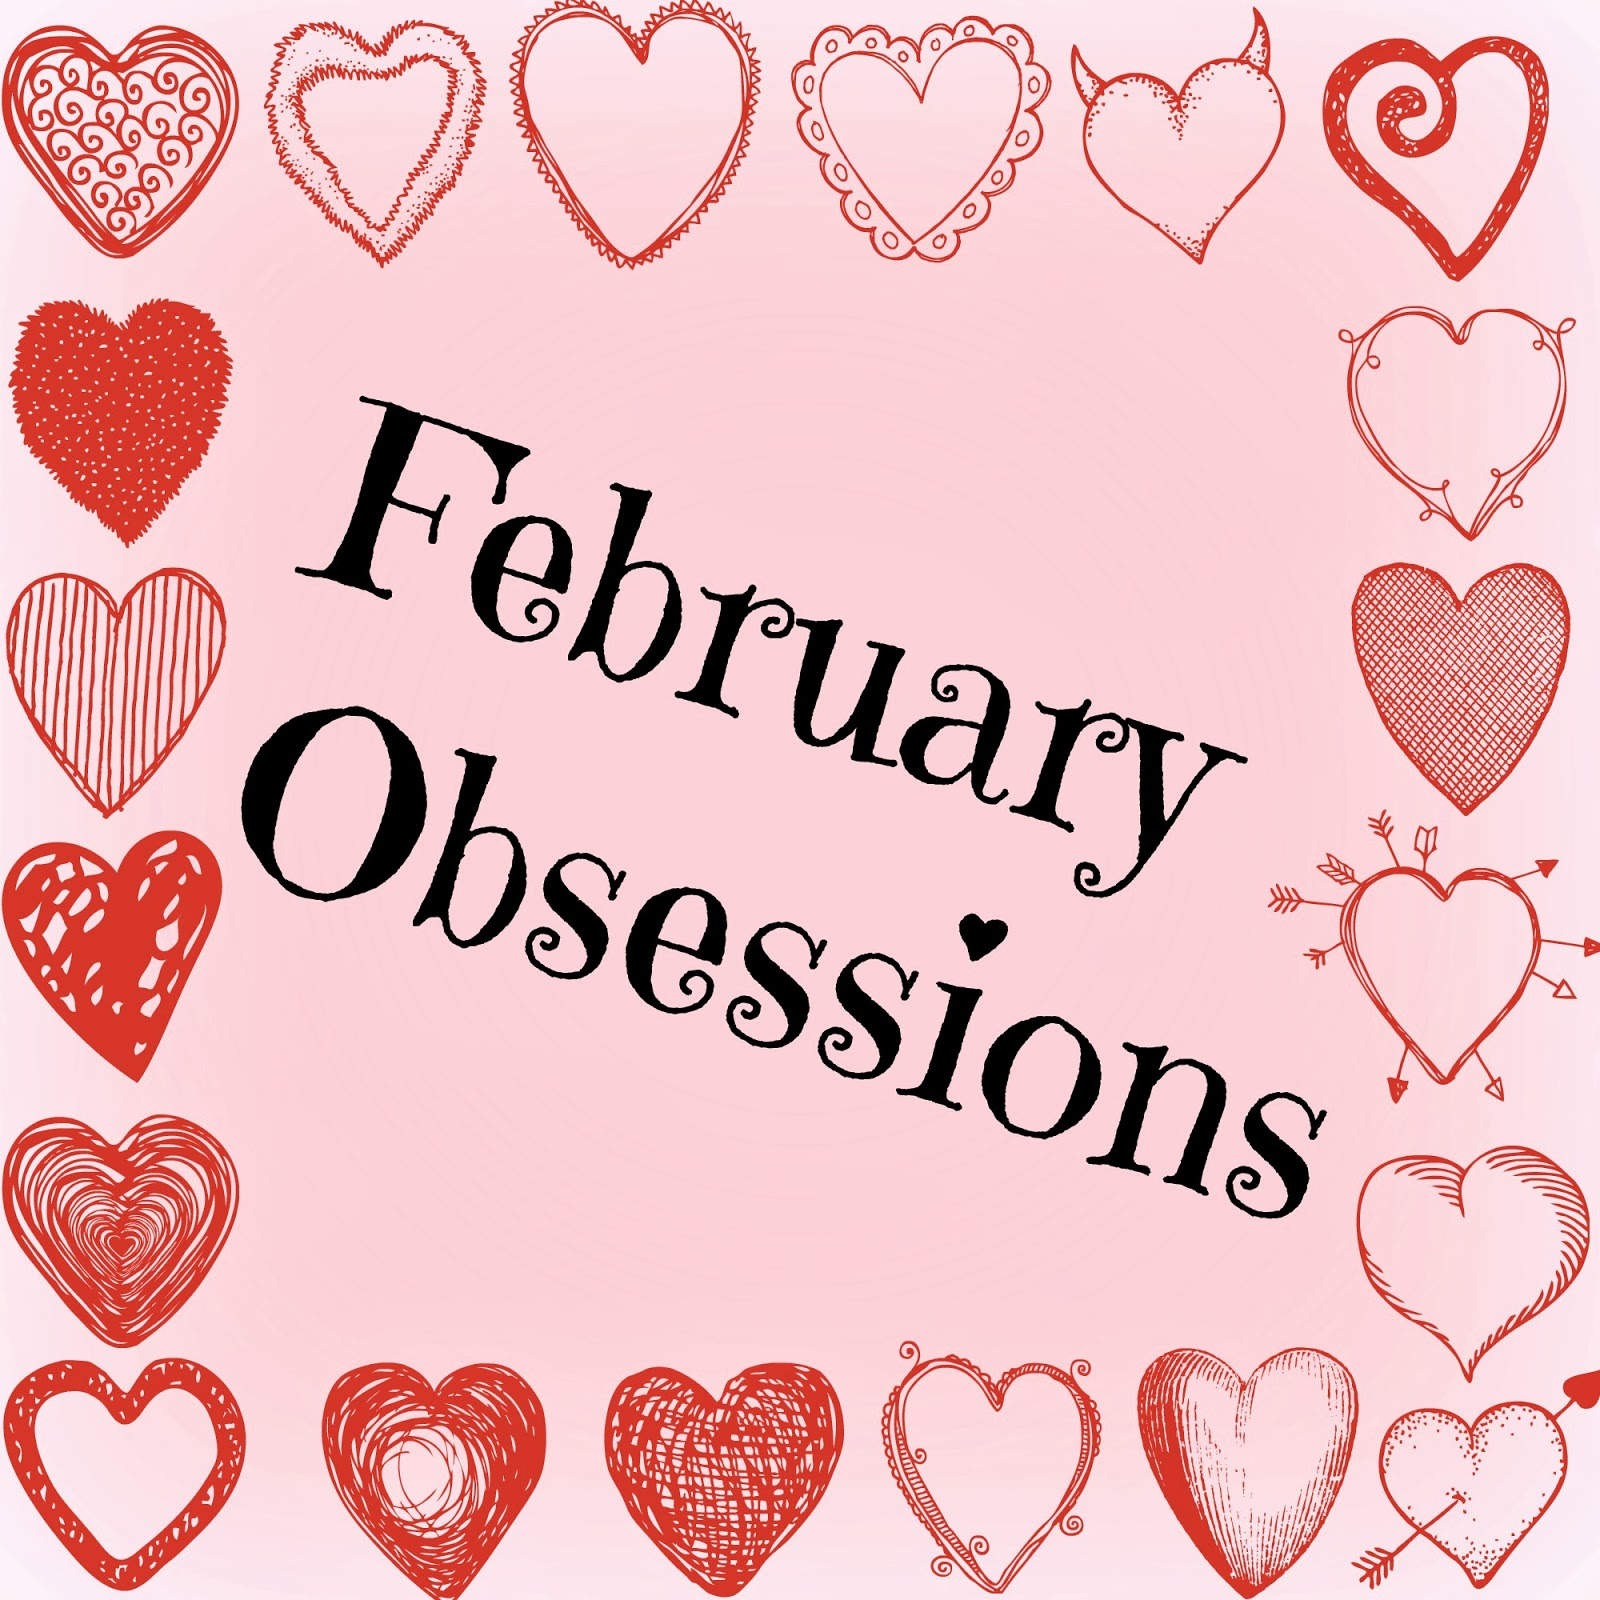 February Obsessions. Flappy Bird, E.L.F., Supernatural, Minecraft, Kraft Mac n' Cheese, Lauren the secret agent hedgehog